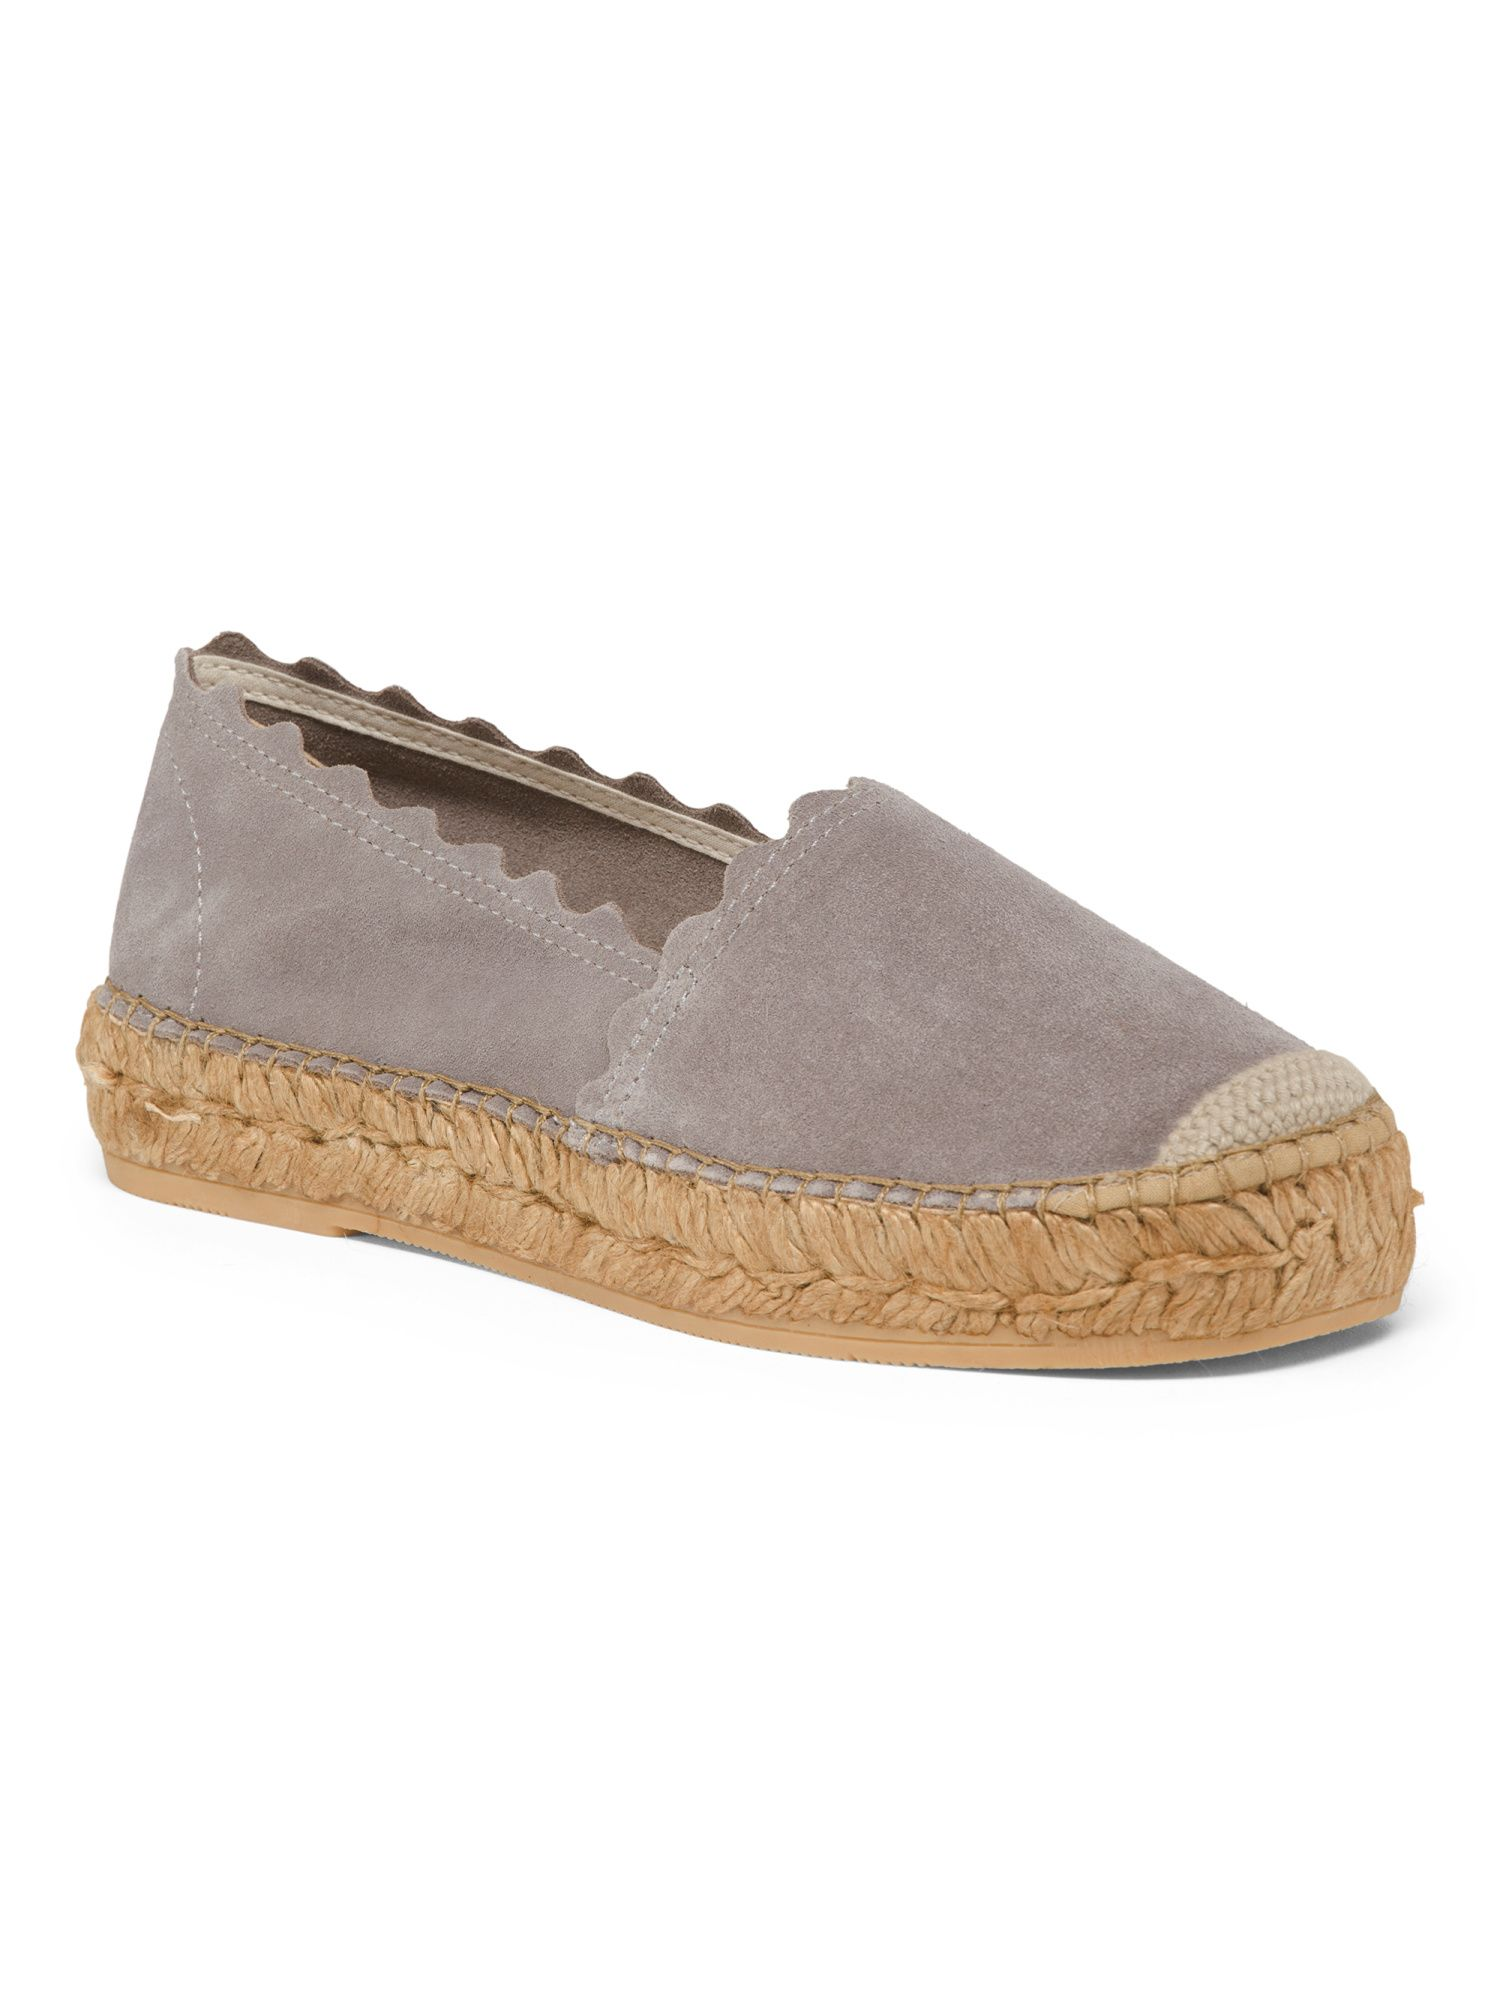 648ceee35 Made In Spain Suede Espadrilles in 2019 | Shoes | Espadrilles, Shoes ...